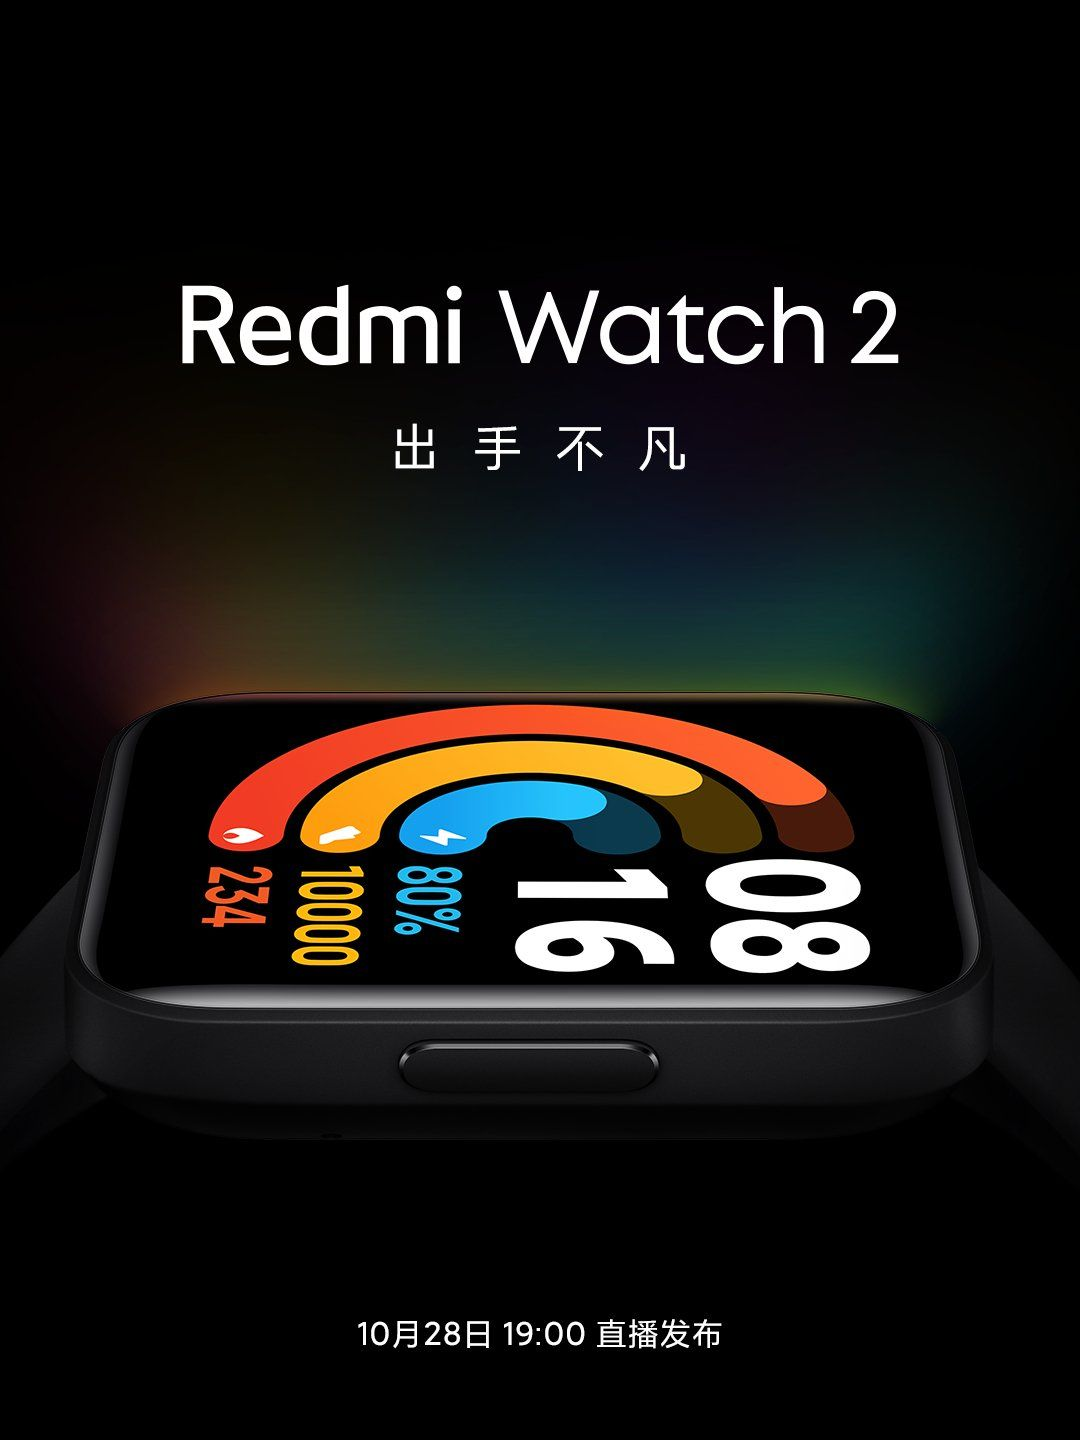 Redmi Watch 2 will be launched on October 28 alongside the Redmi Note 11 series: expected specifications, features